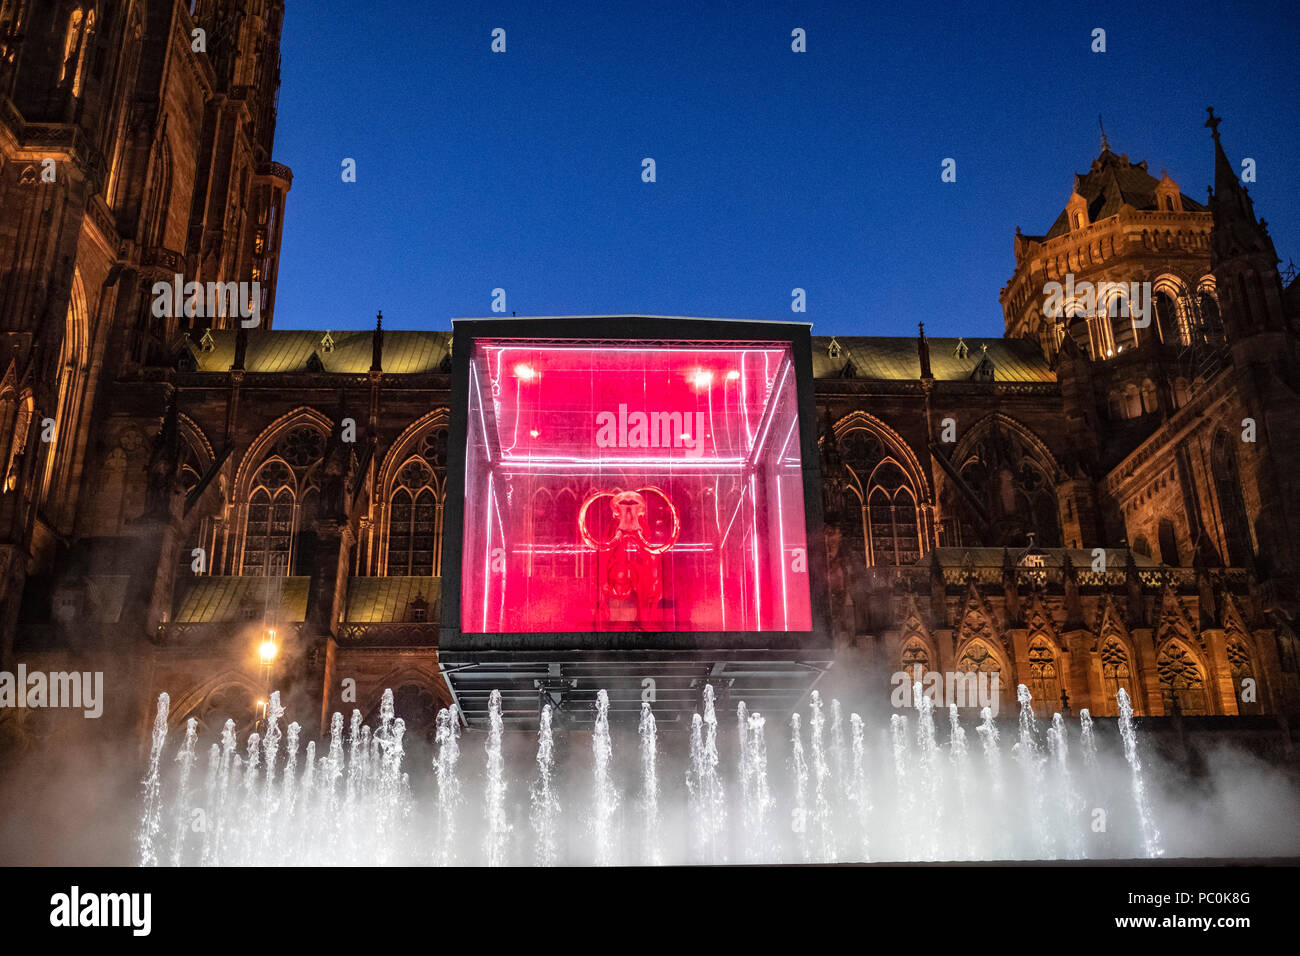 Strasbourg, 12.000-year-old mammoth skeleton suspended in display case, jet water fountain, illuminated cathedral, night, Alsace, France, Europe, - Stock Image